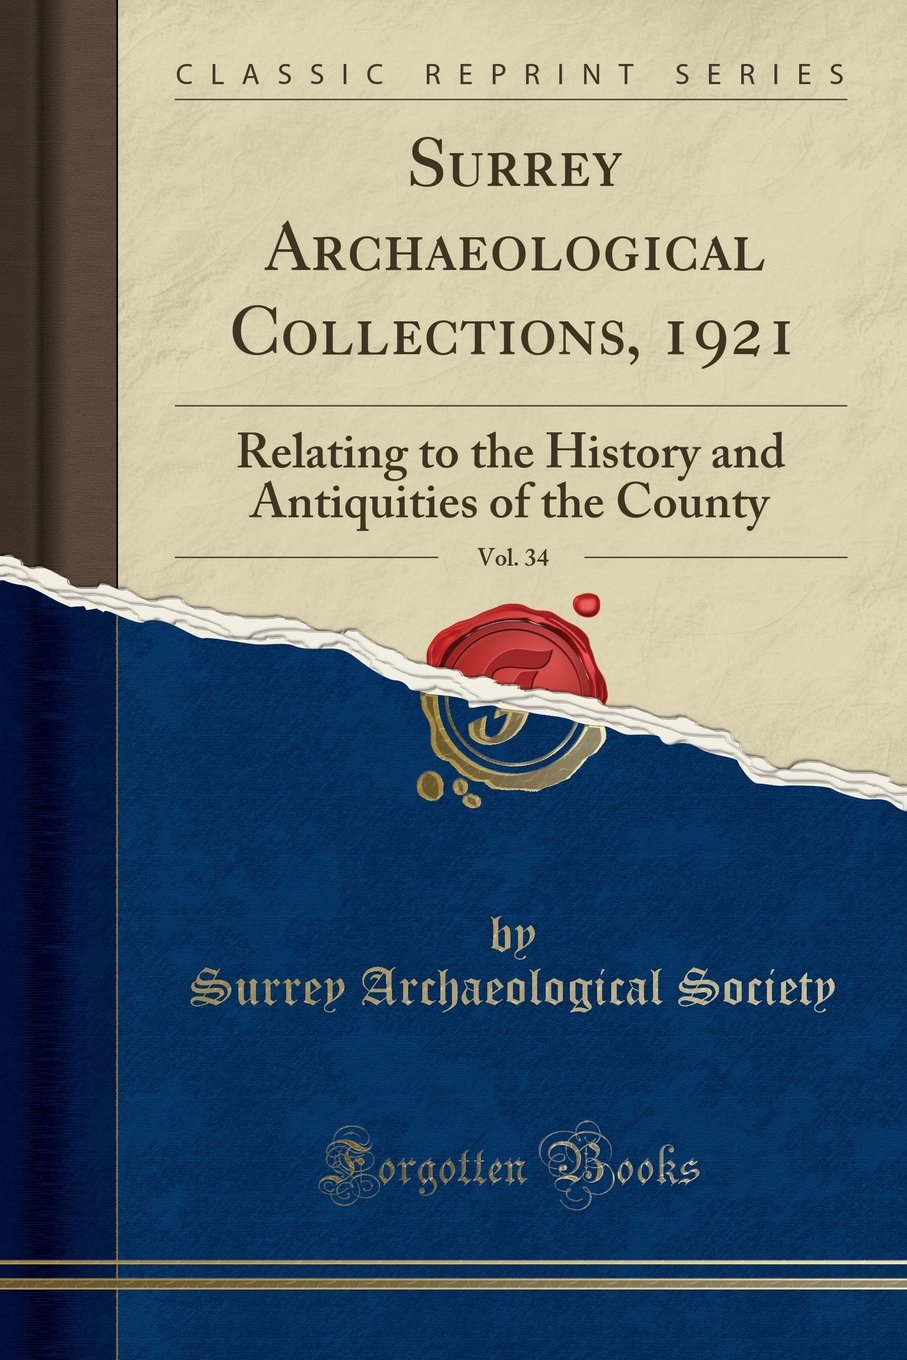 Surrey Archaeological Collections, 1921, Vol. 34: Relating to the History and Antiquities of the County (Classic Reprint) PDF